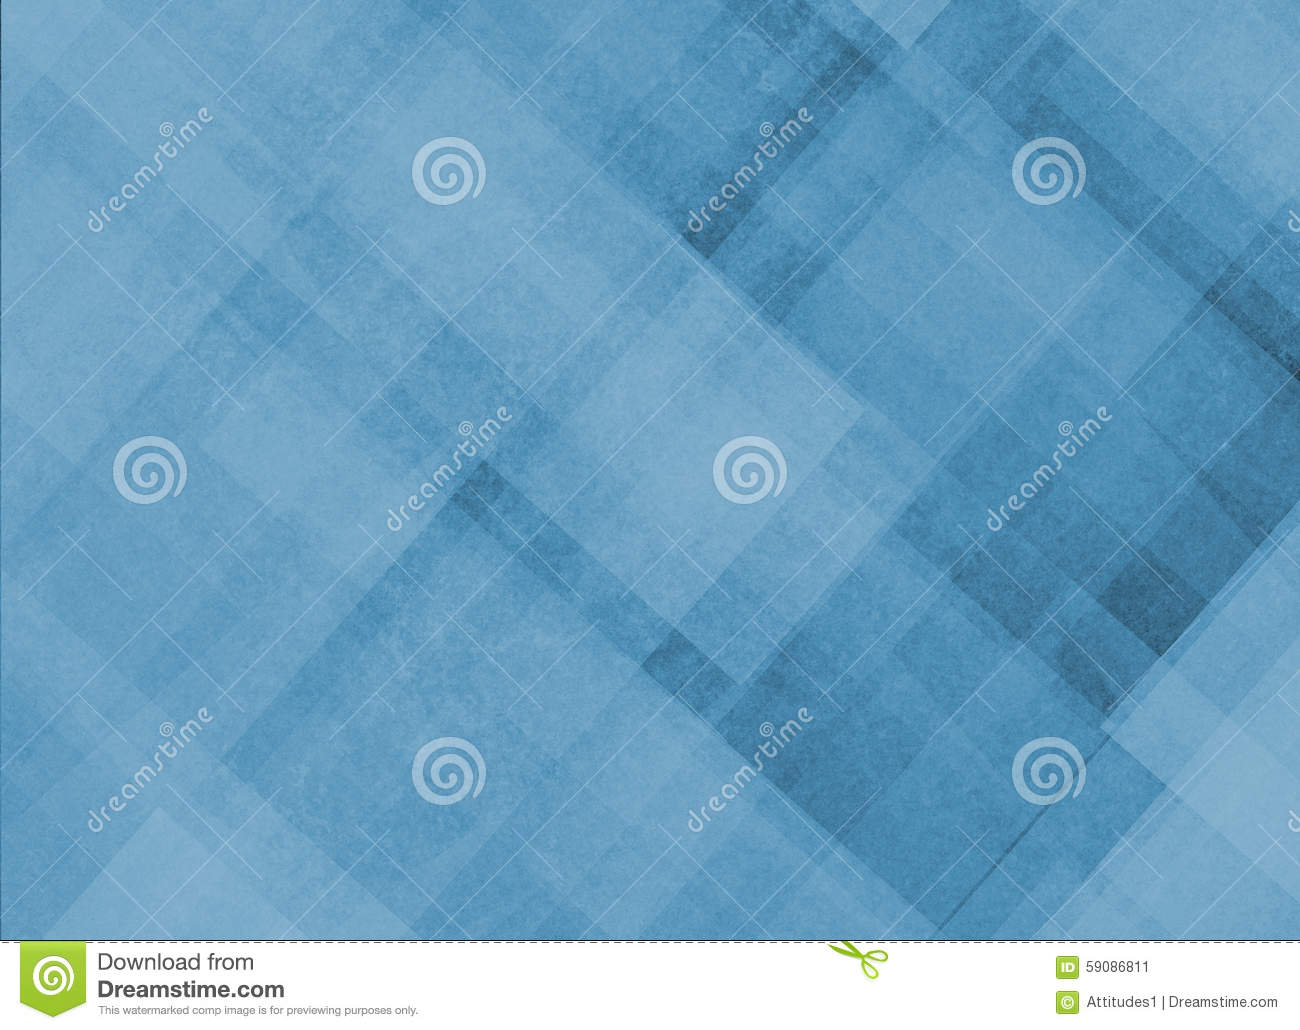 Lines And Shapes : Abstract blue background with diagonal stripes lines and